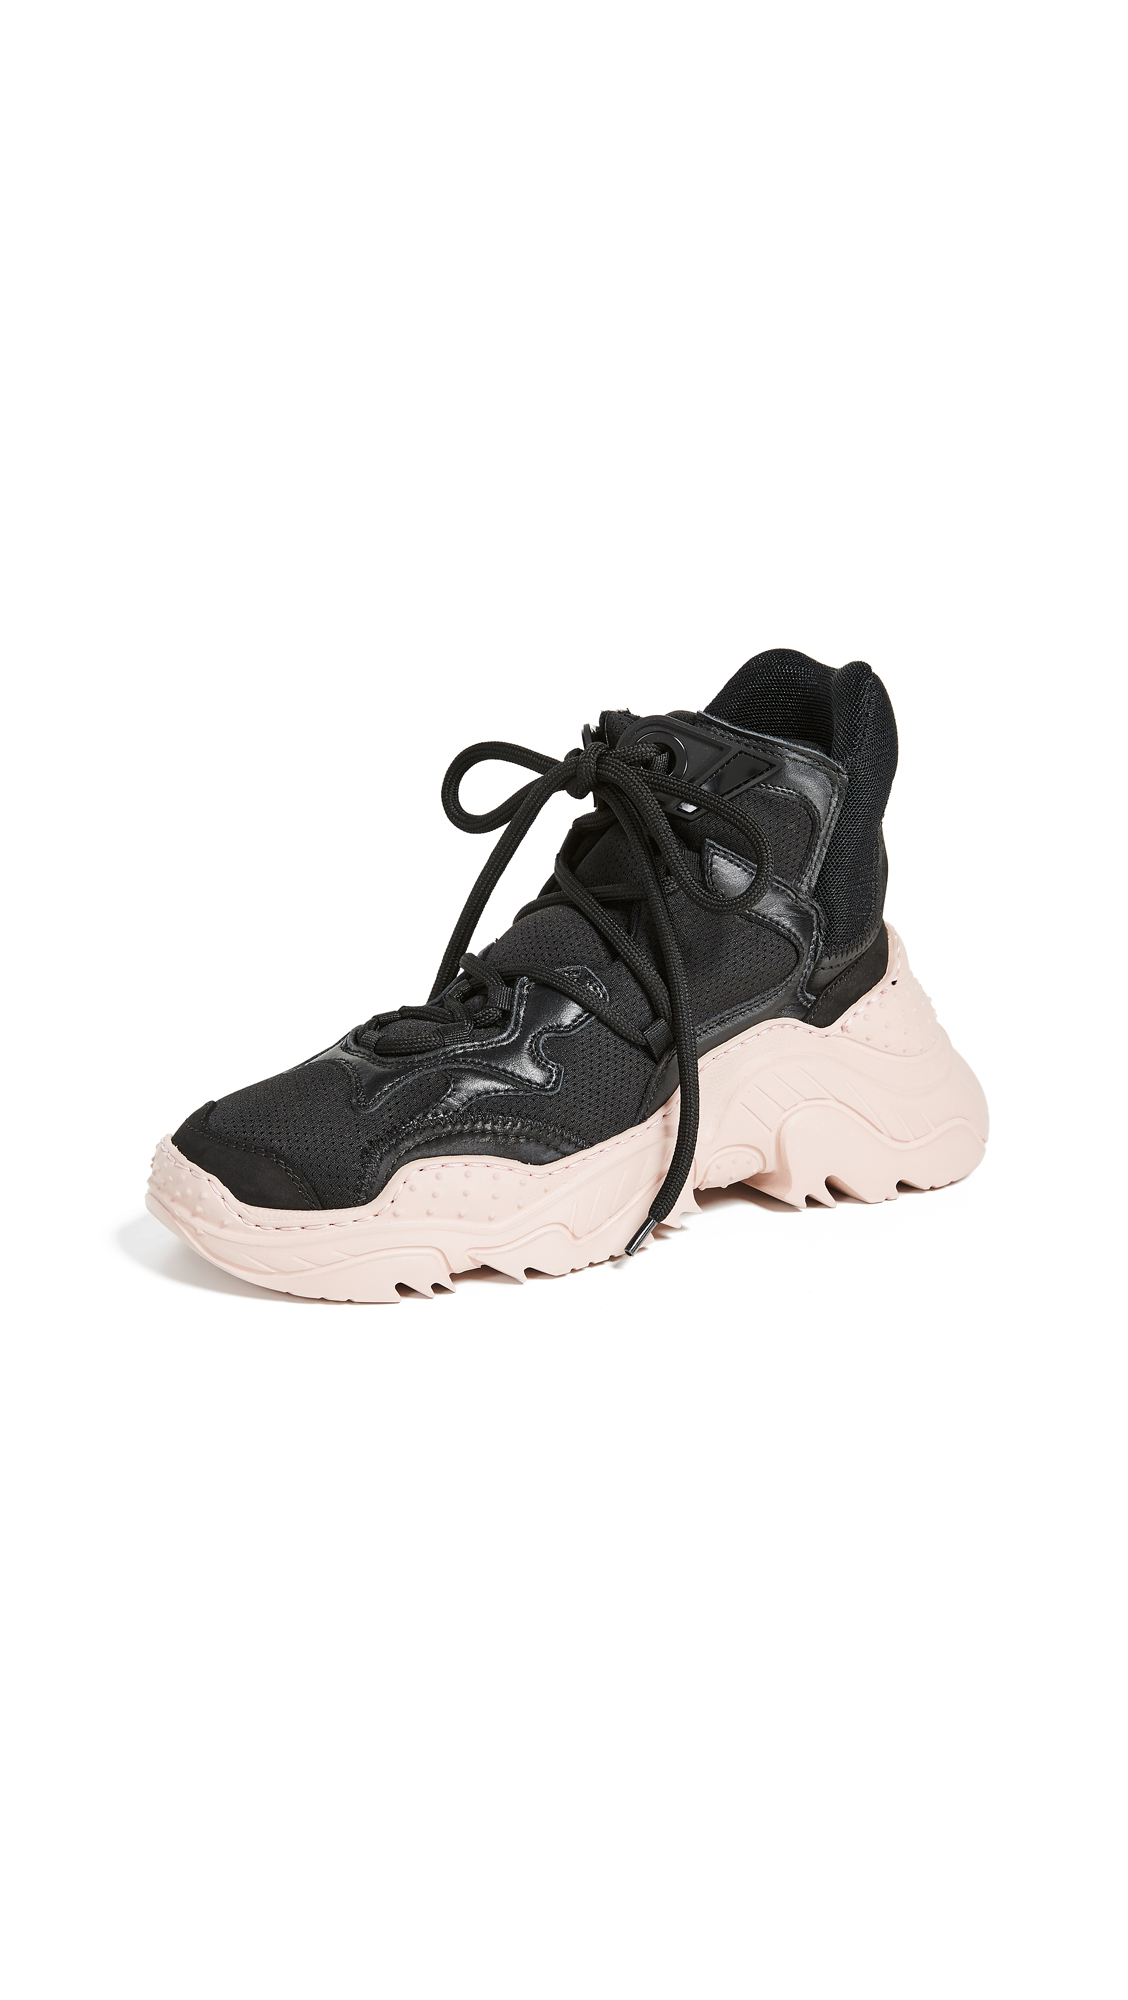 No. 21 Billy Hikers - Black/Nude